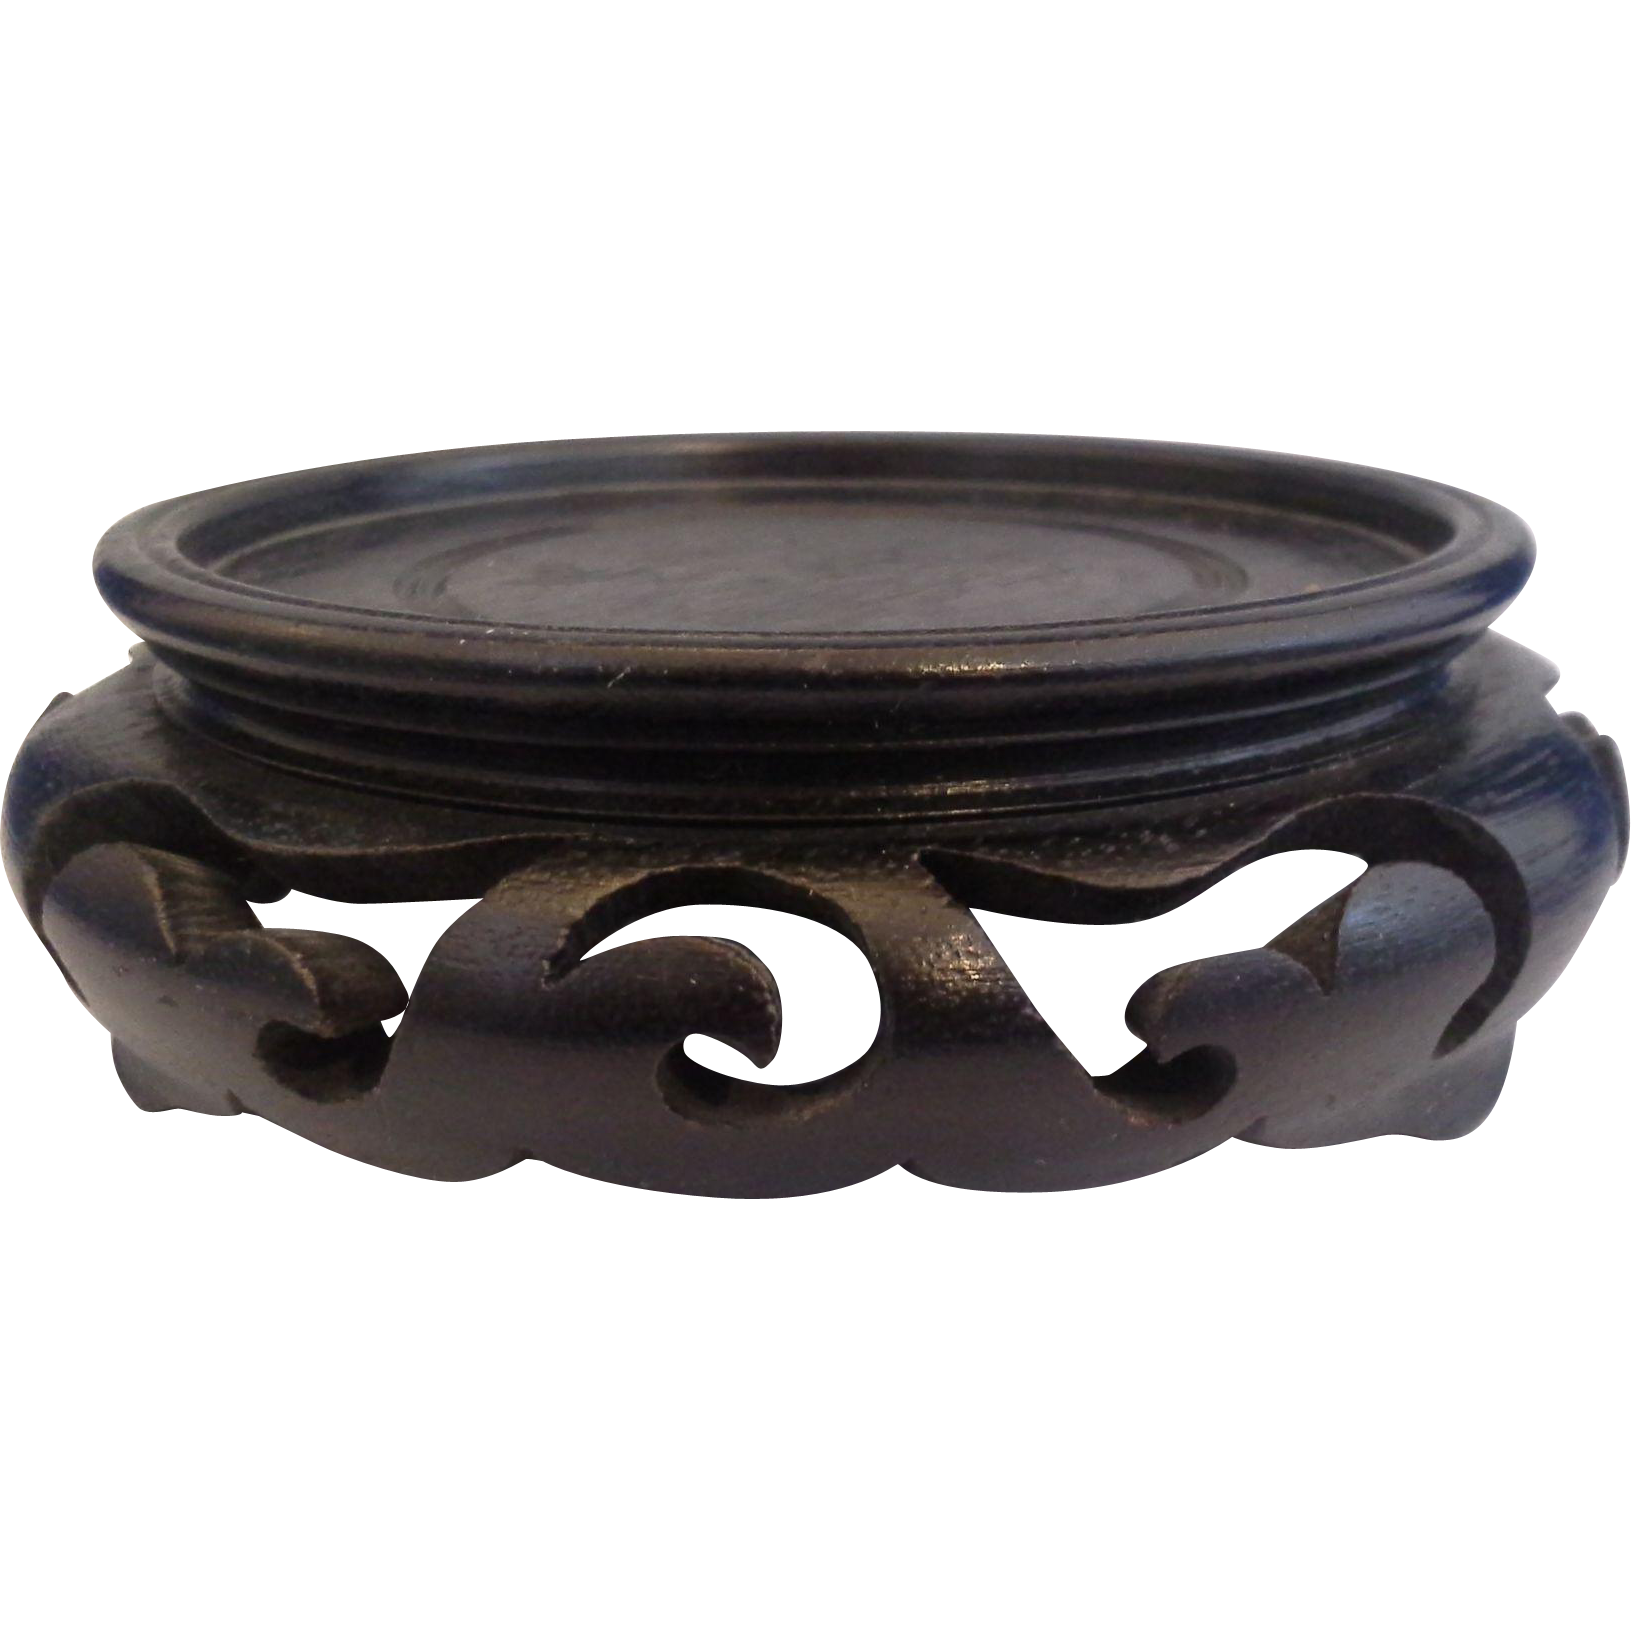 Carved Wooden Base 3 1/4 IN Display For Bowl or Vase